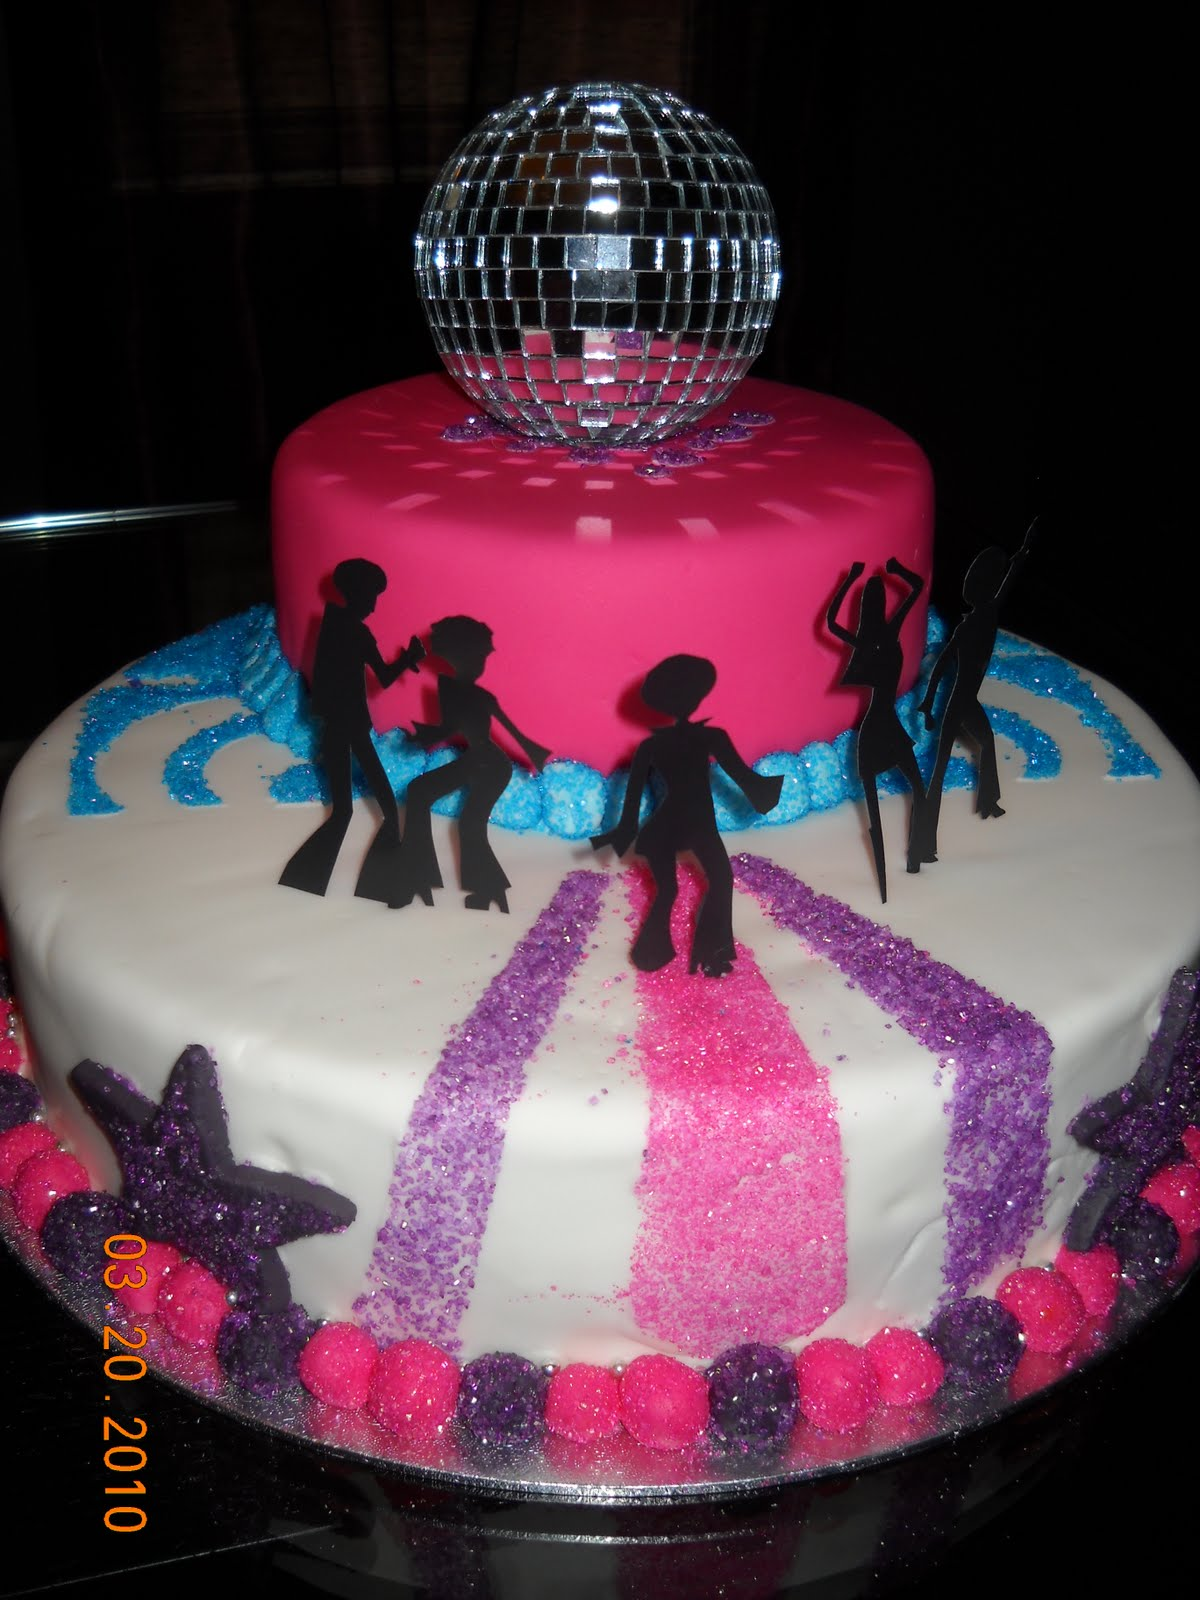 Disco Party Cake Images : Jocelyn s Wedding Cakes and More....: disco cake